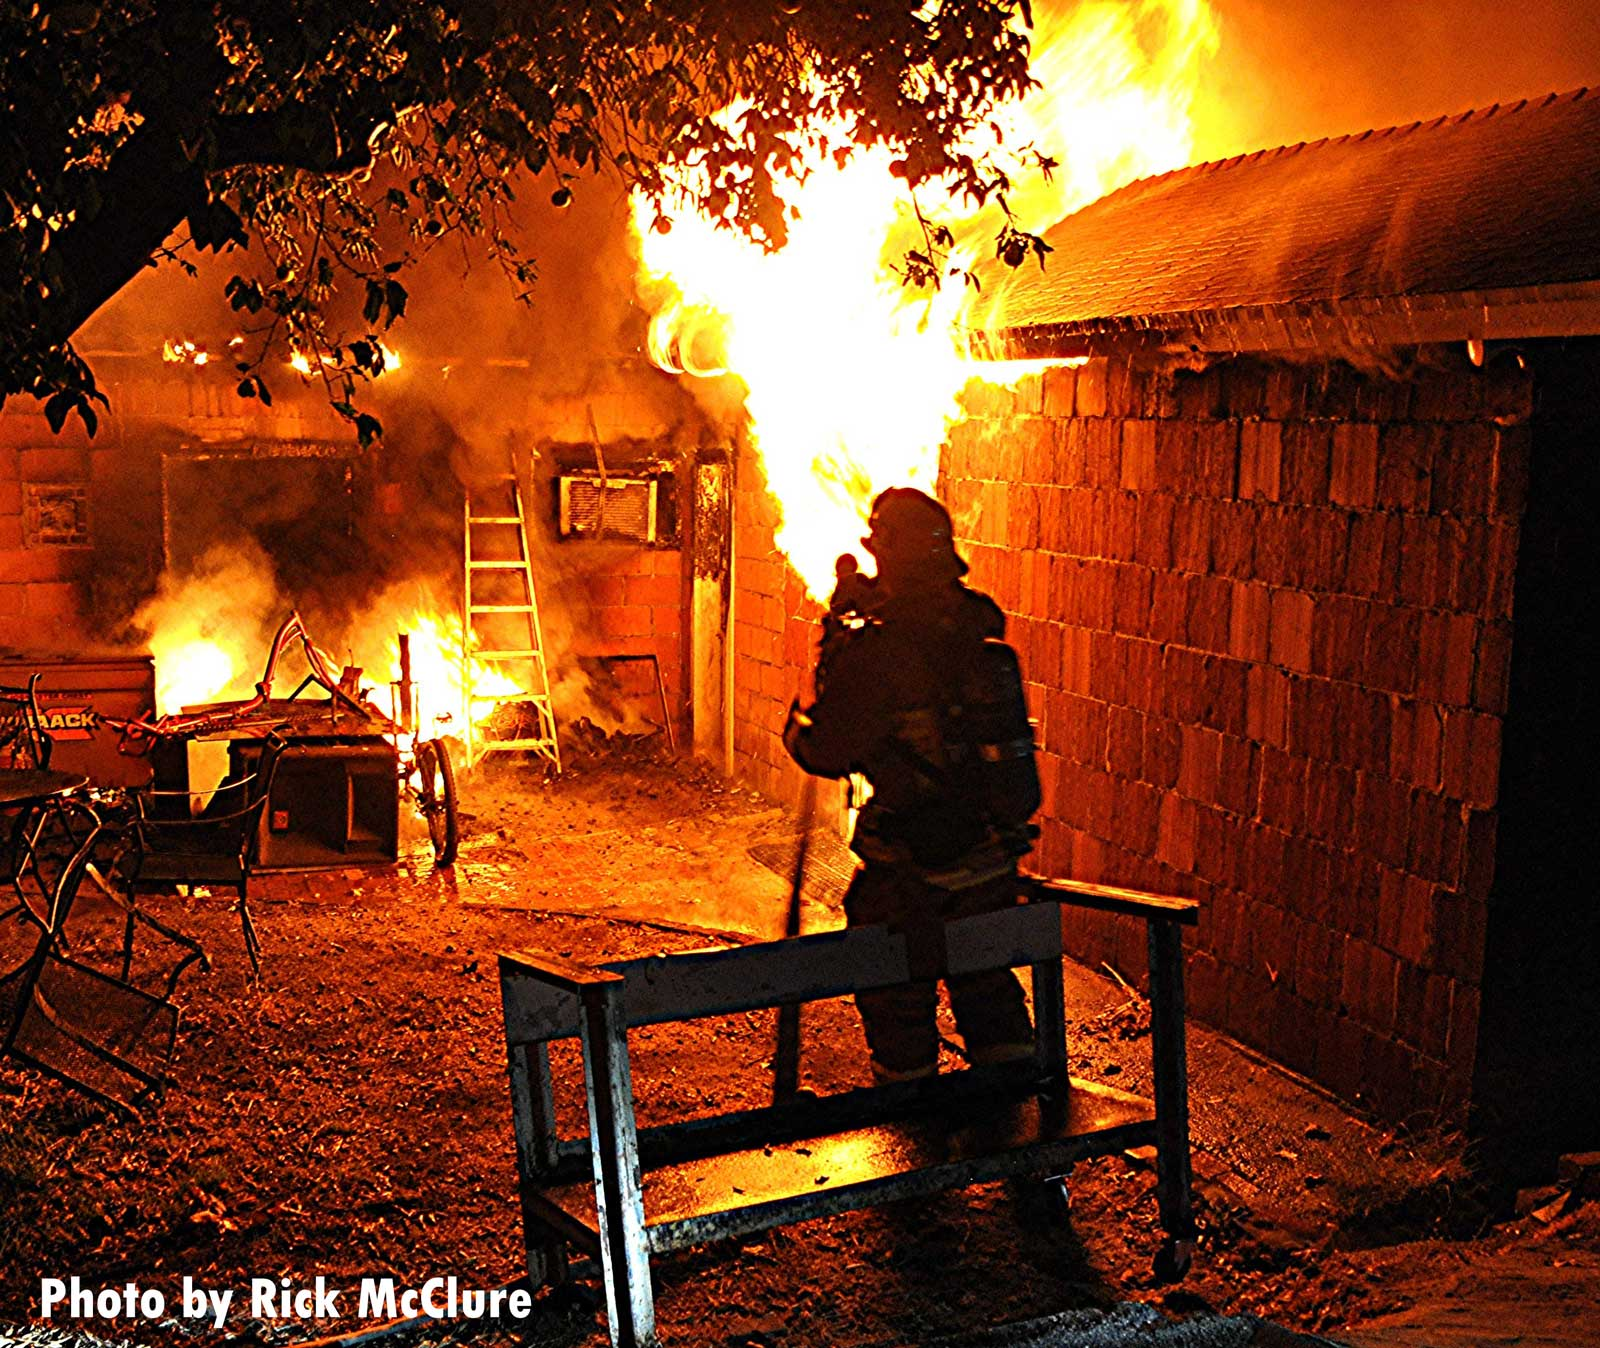 Firefighter silhouette against flames raging inside a home